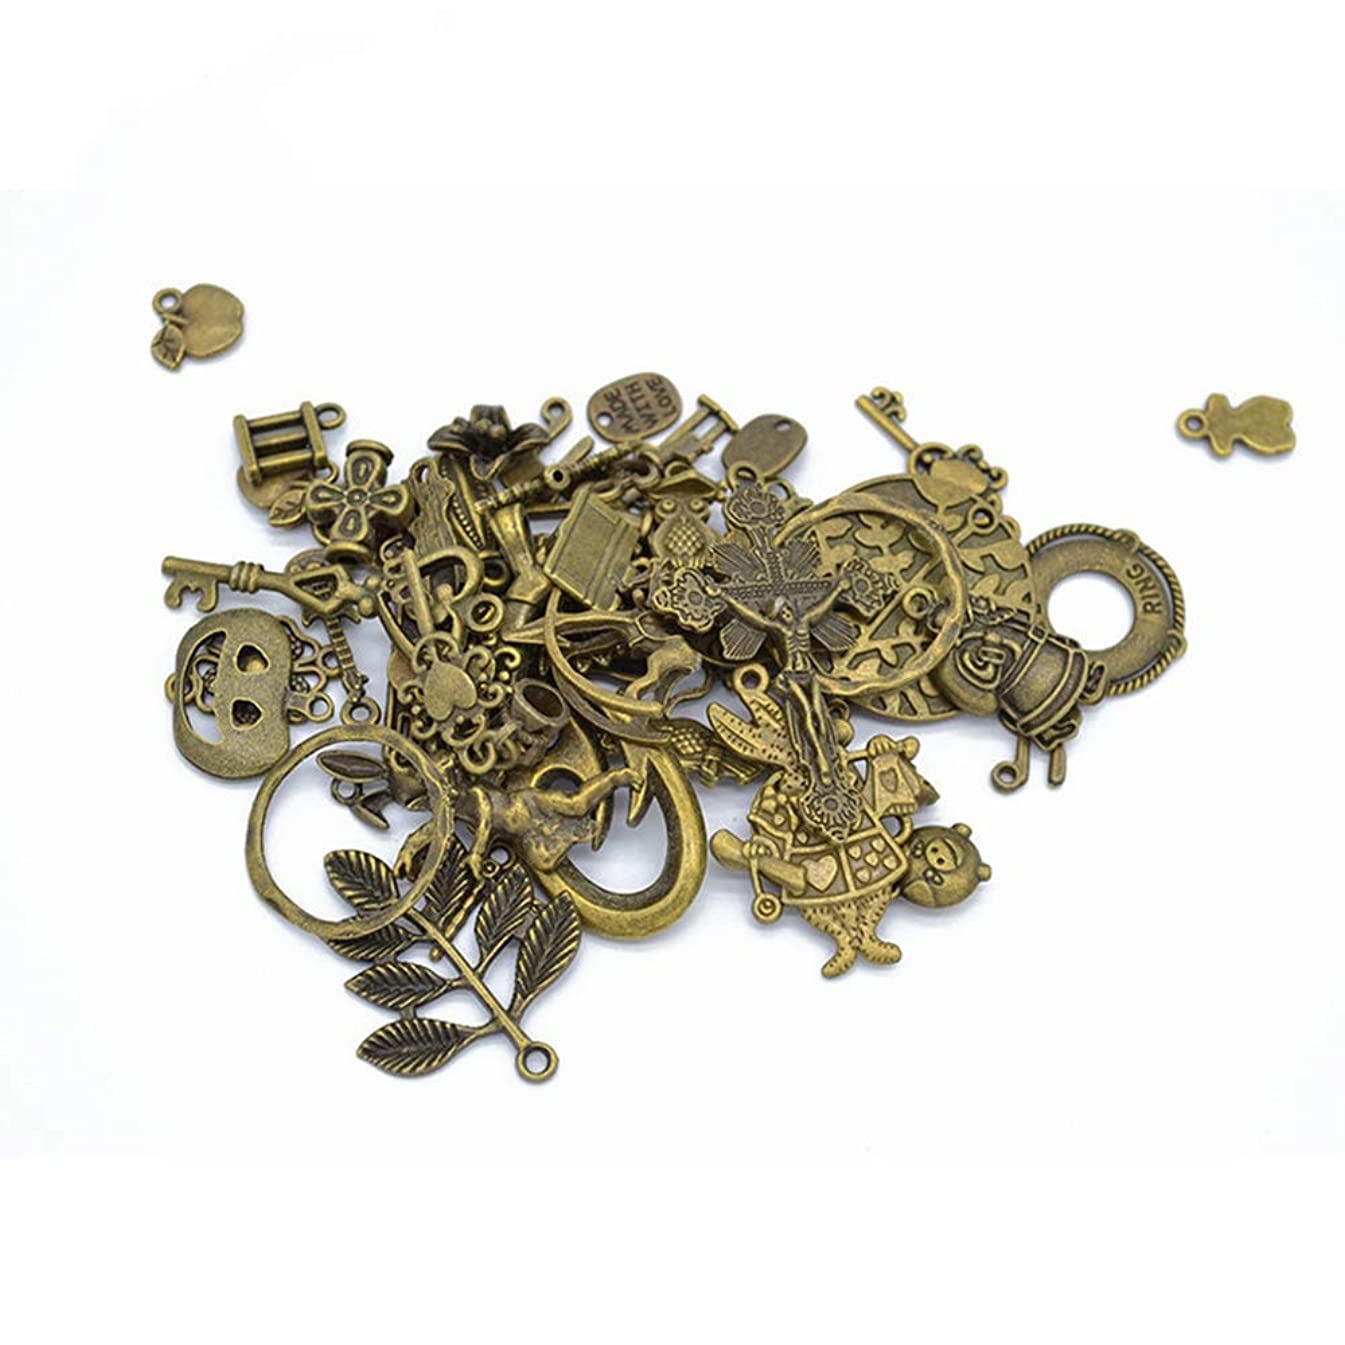 50 Grams of Alloy Jewelry DIY Clothing Jewelry Accessories Mixed(Ancient Cyan)